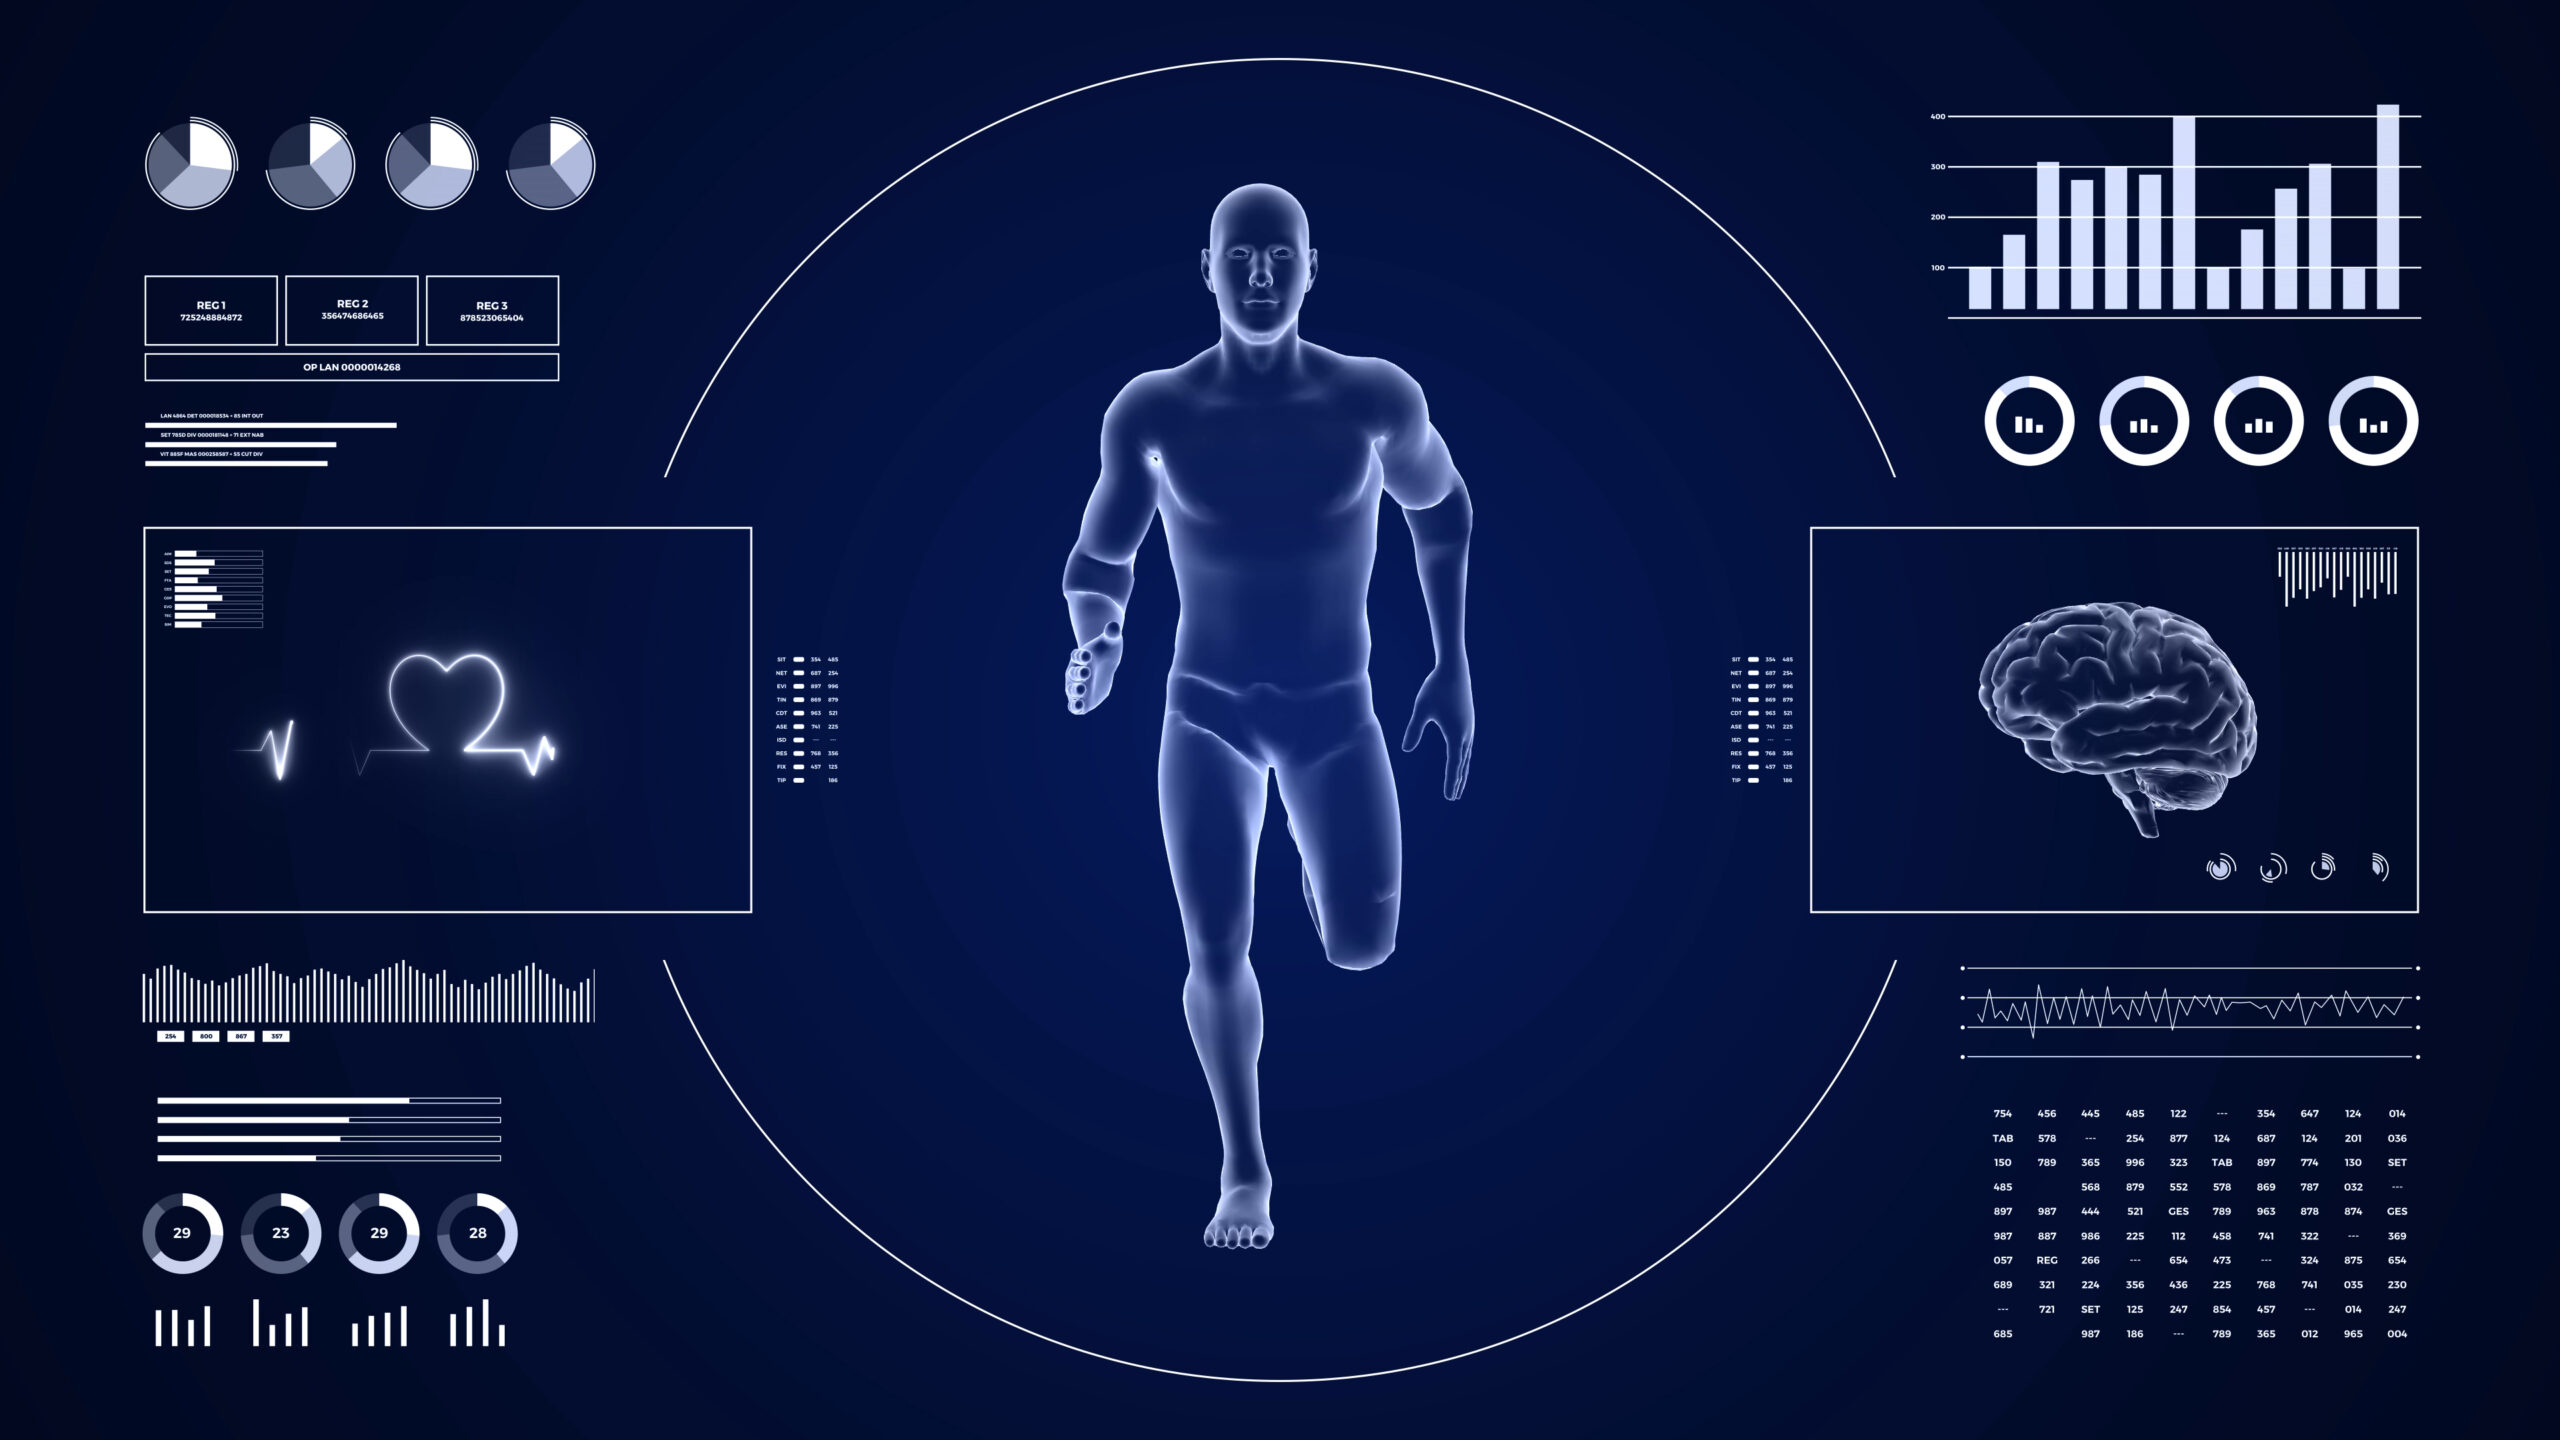 HUD display monitoring cardio running activity of man. Human male figure 3d in fitness motion. Infographics data and reports on digital sport interface. Image credit: Myvector, iStock